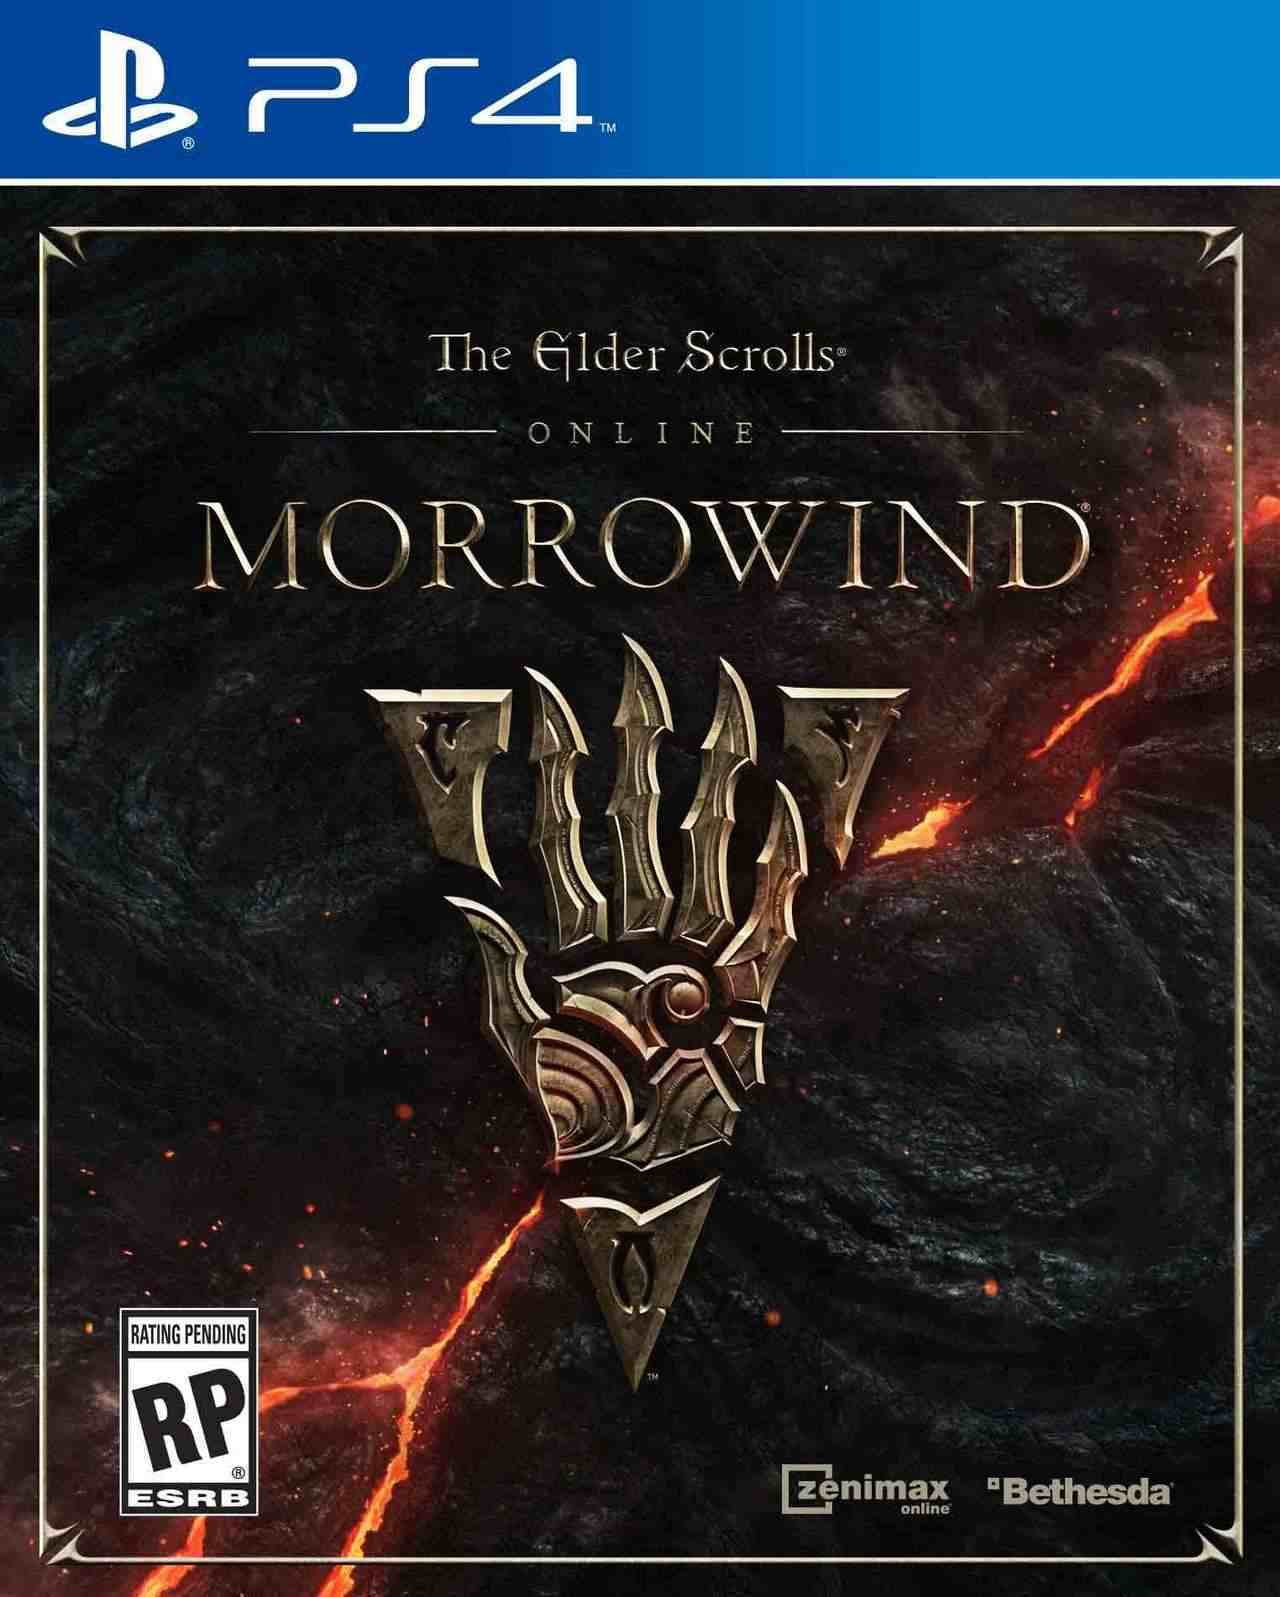 The Elder Scrolls Online Morrowind PS4 Download Code kaufen